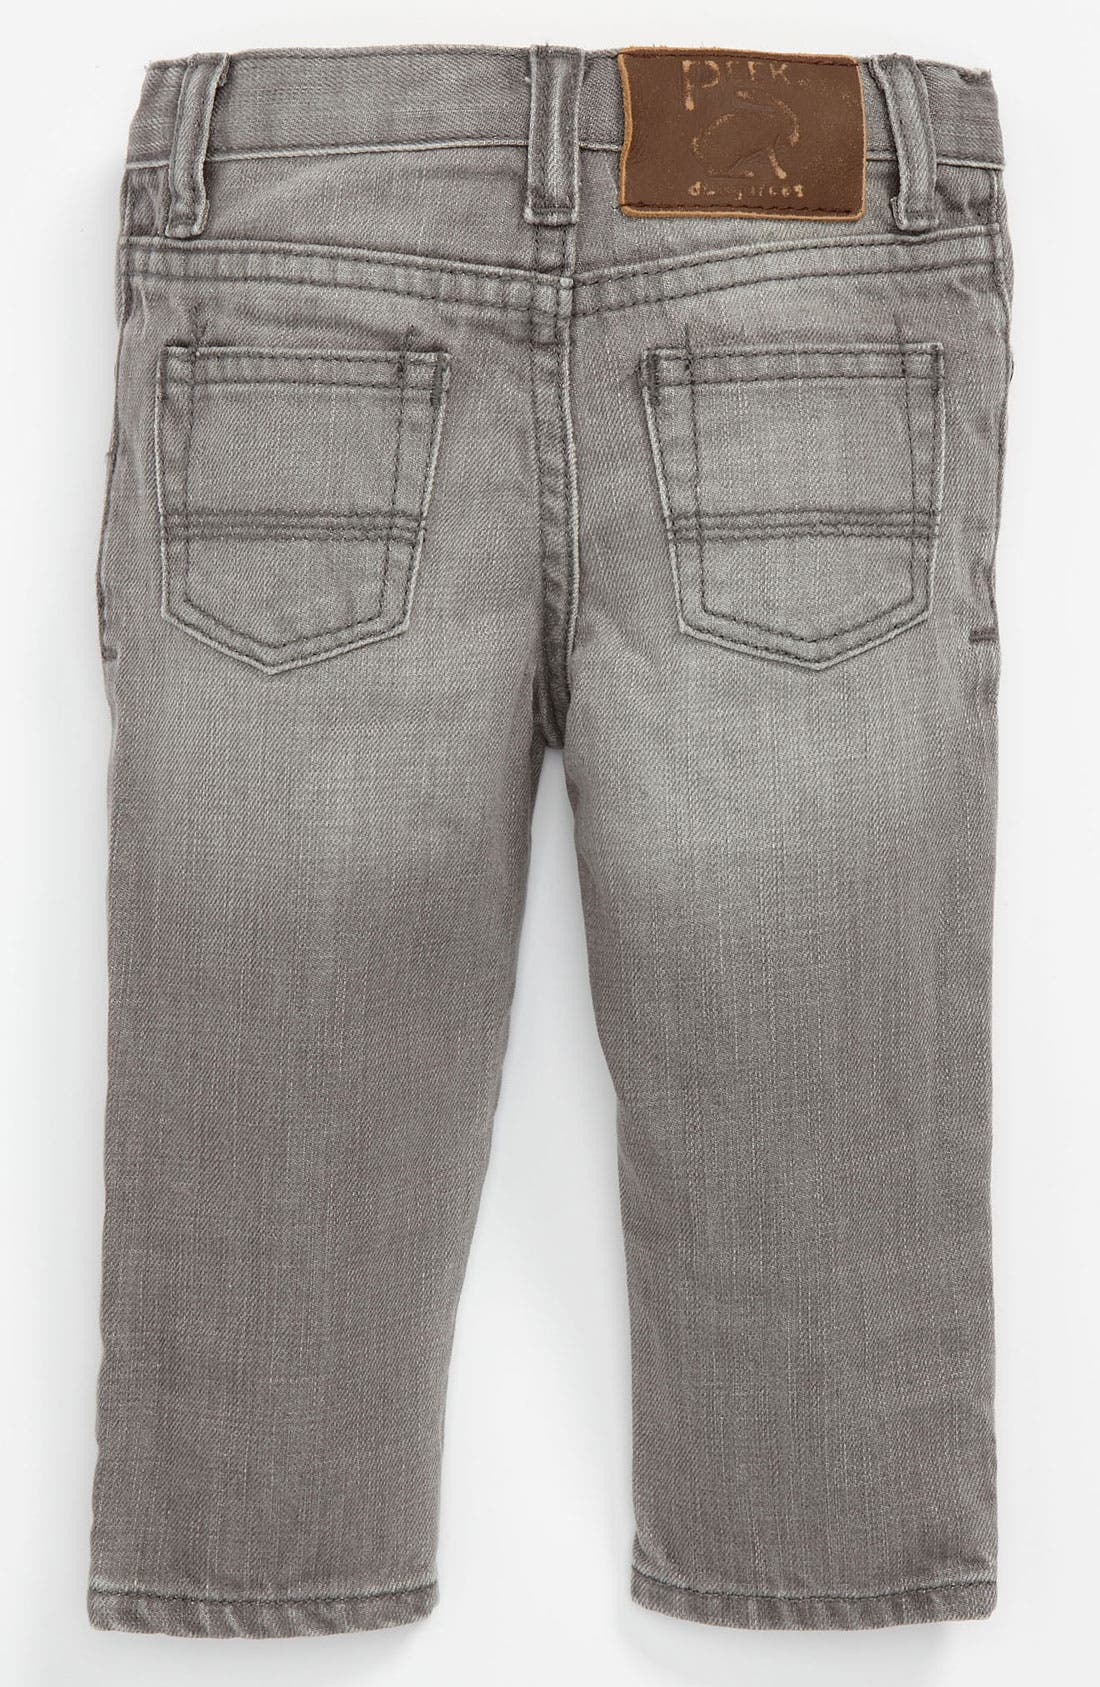 Main Image - Peek 'Slouch' Jeans (Baby)